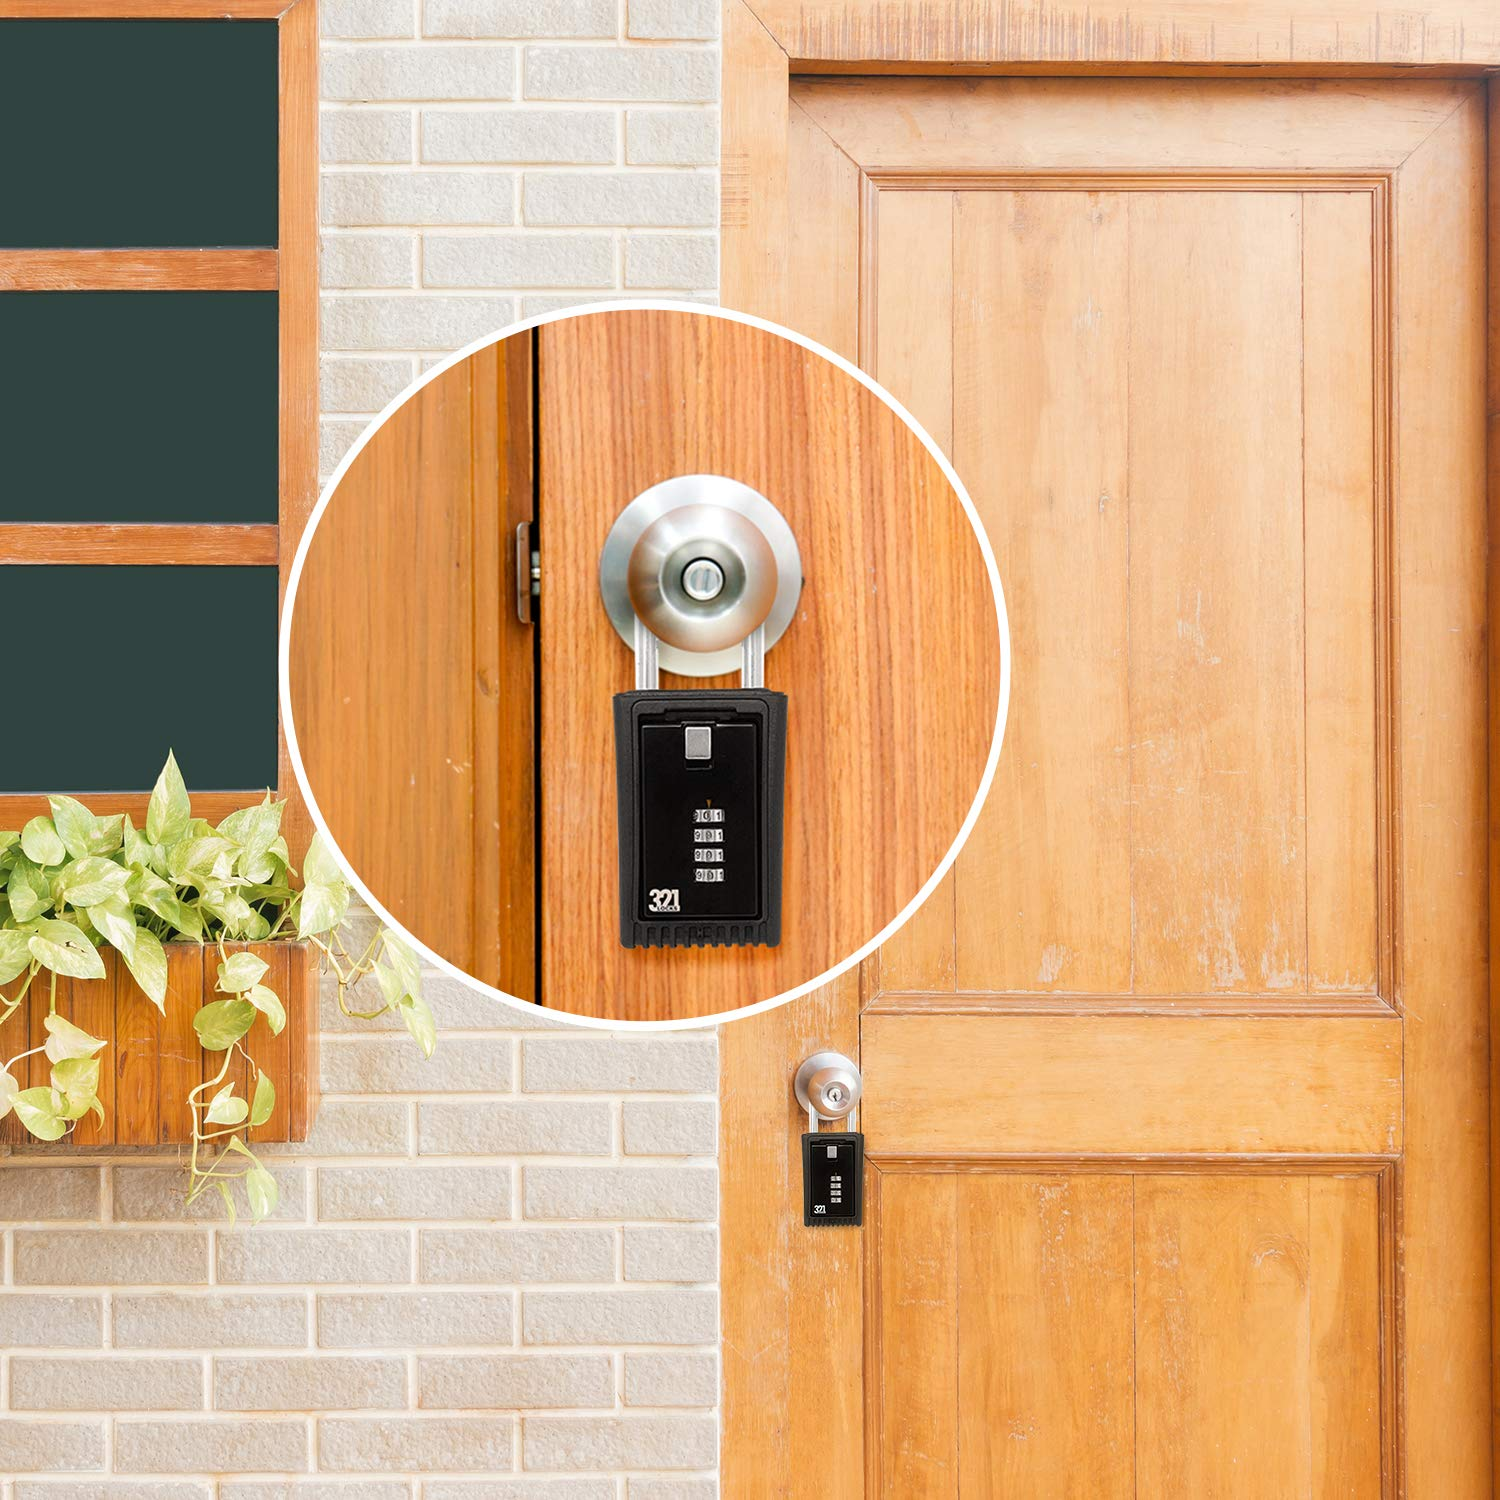 Spare Key Rental Hide a Key Outside for Your House Key Lock Box LB-003 5 Realtor 1 Pack Contractor Door Knob Mount Key Storage Lockbox Combination Shackle Fence Mount